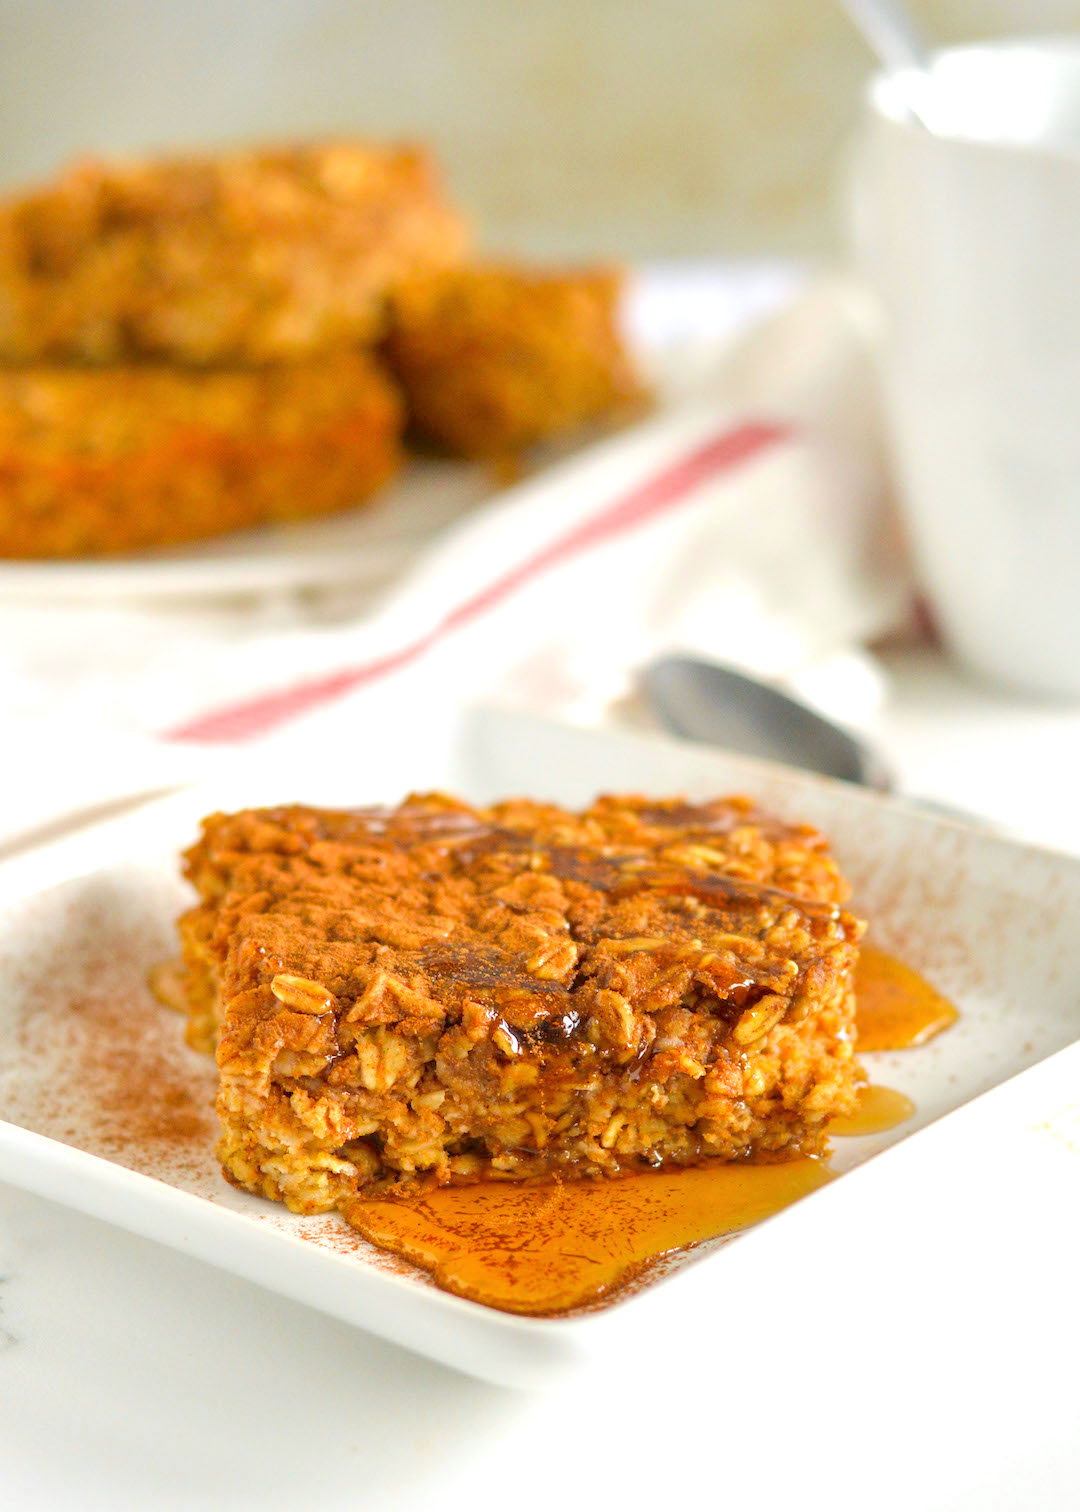 A healthy and gluten free Pumpkin Spice Baked Oatmeal recipe made with GF rolled oats, pumpkin, lots of pumpkin spice and topped with raw pumpkin seeds. | nourishedtheblog.com |